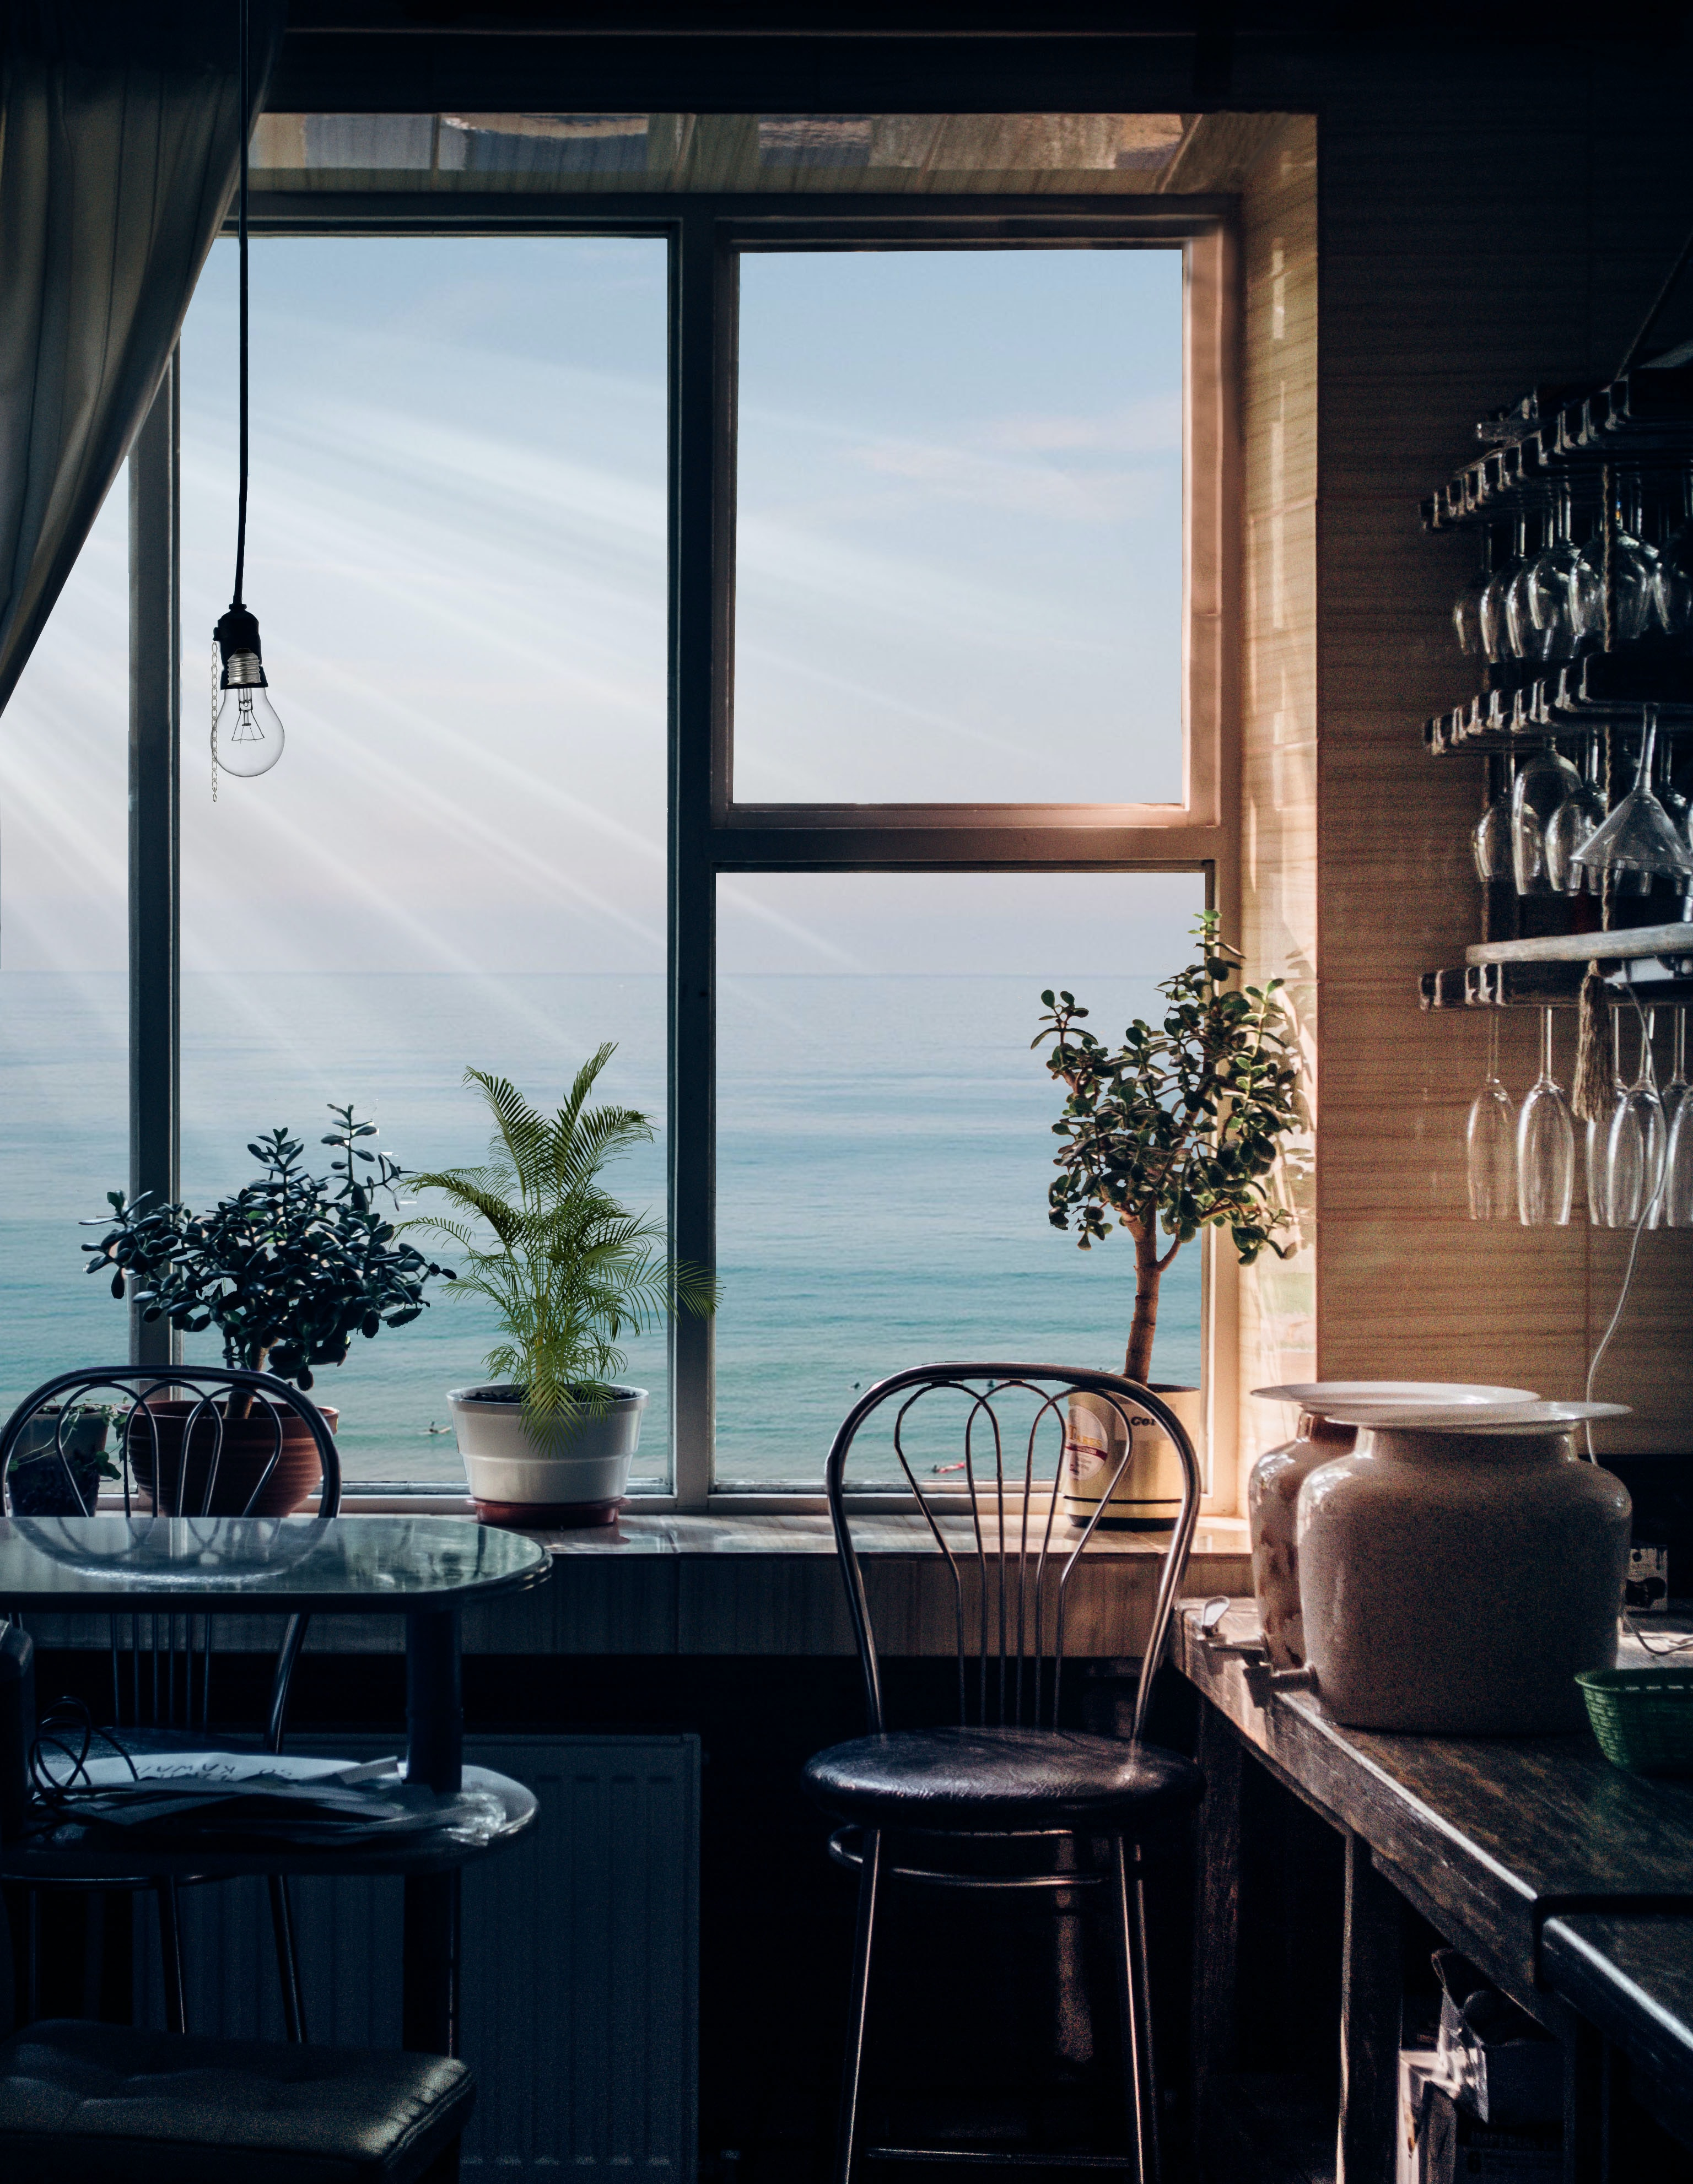 Interior Window Stall And Rays Hd Photo By Andrii Podilnyk